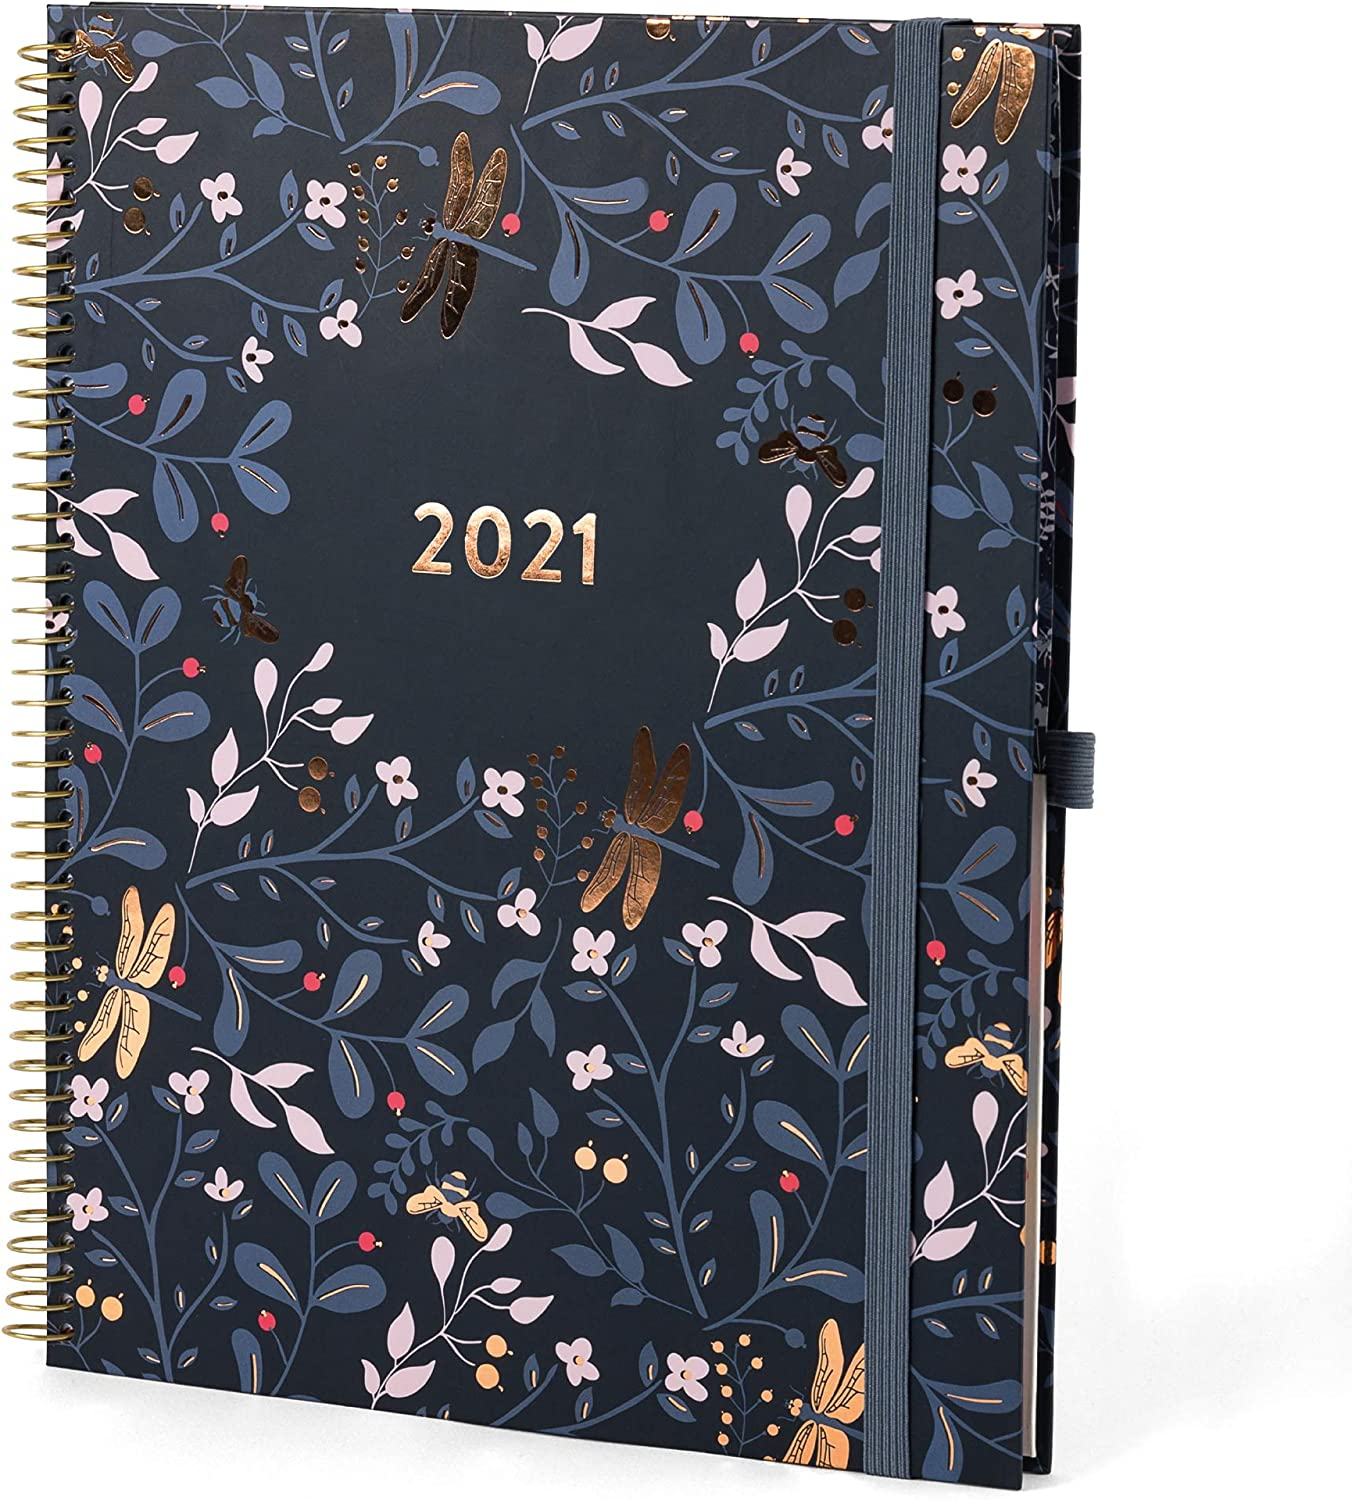 Boxclever Press Planner 2021 8.5 x 11''. New for 2021! 2021 Planner with Tabs Runs Jan - Dec'21. Weekly Planner with Dot Grid Note Pages, Goals & Dreams for 2021 & Planner Stickers. (Midnight Blue)